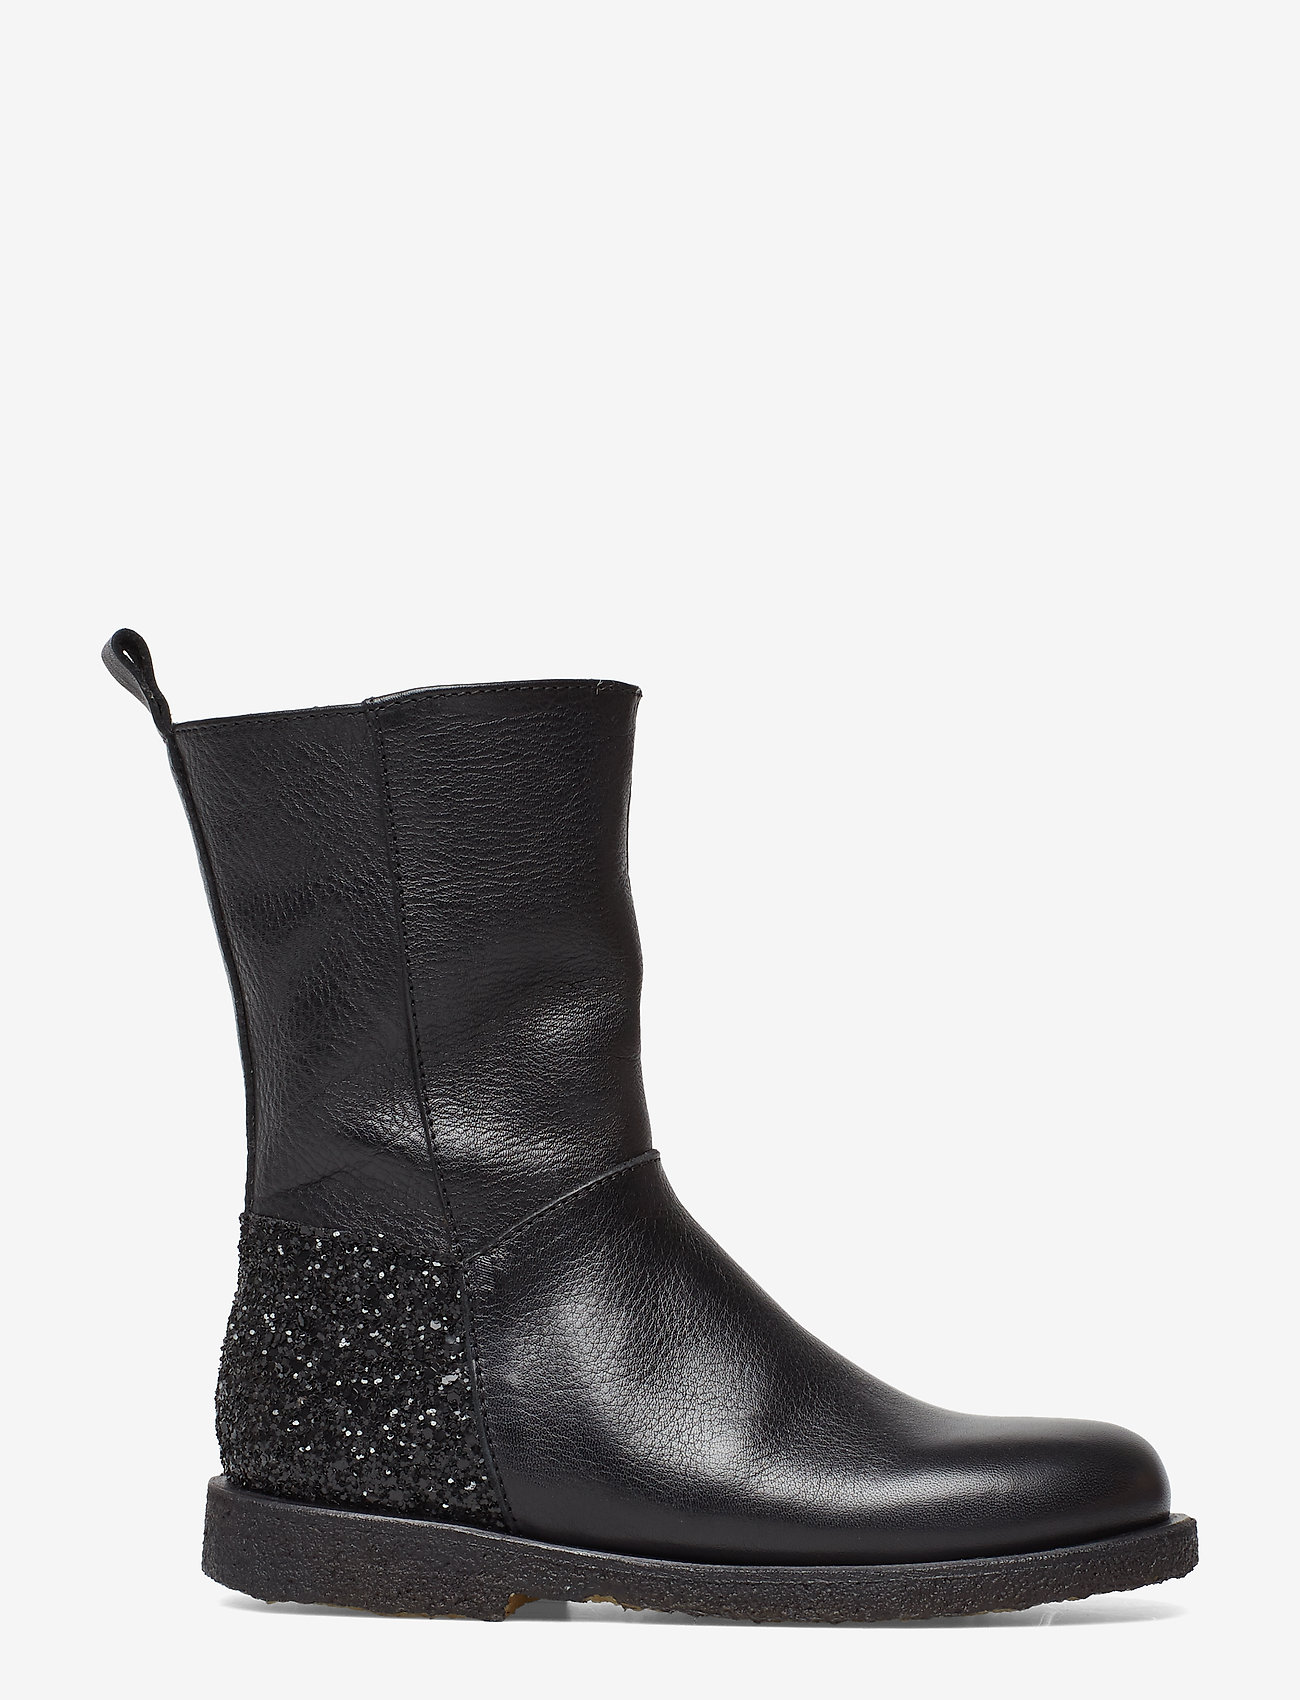 Boots - Flat - With Zipper (1933/2486